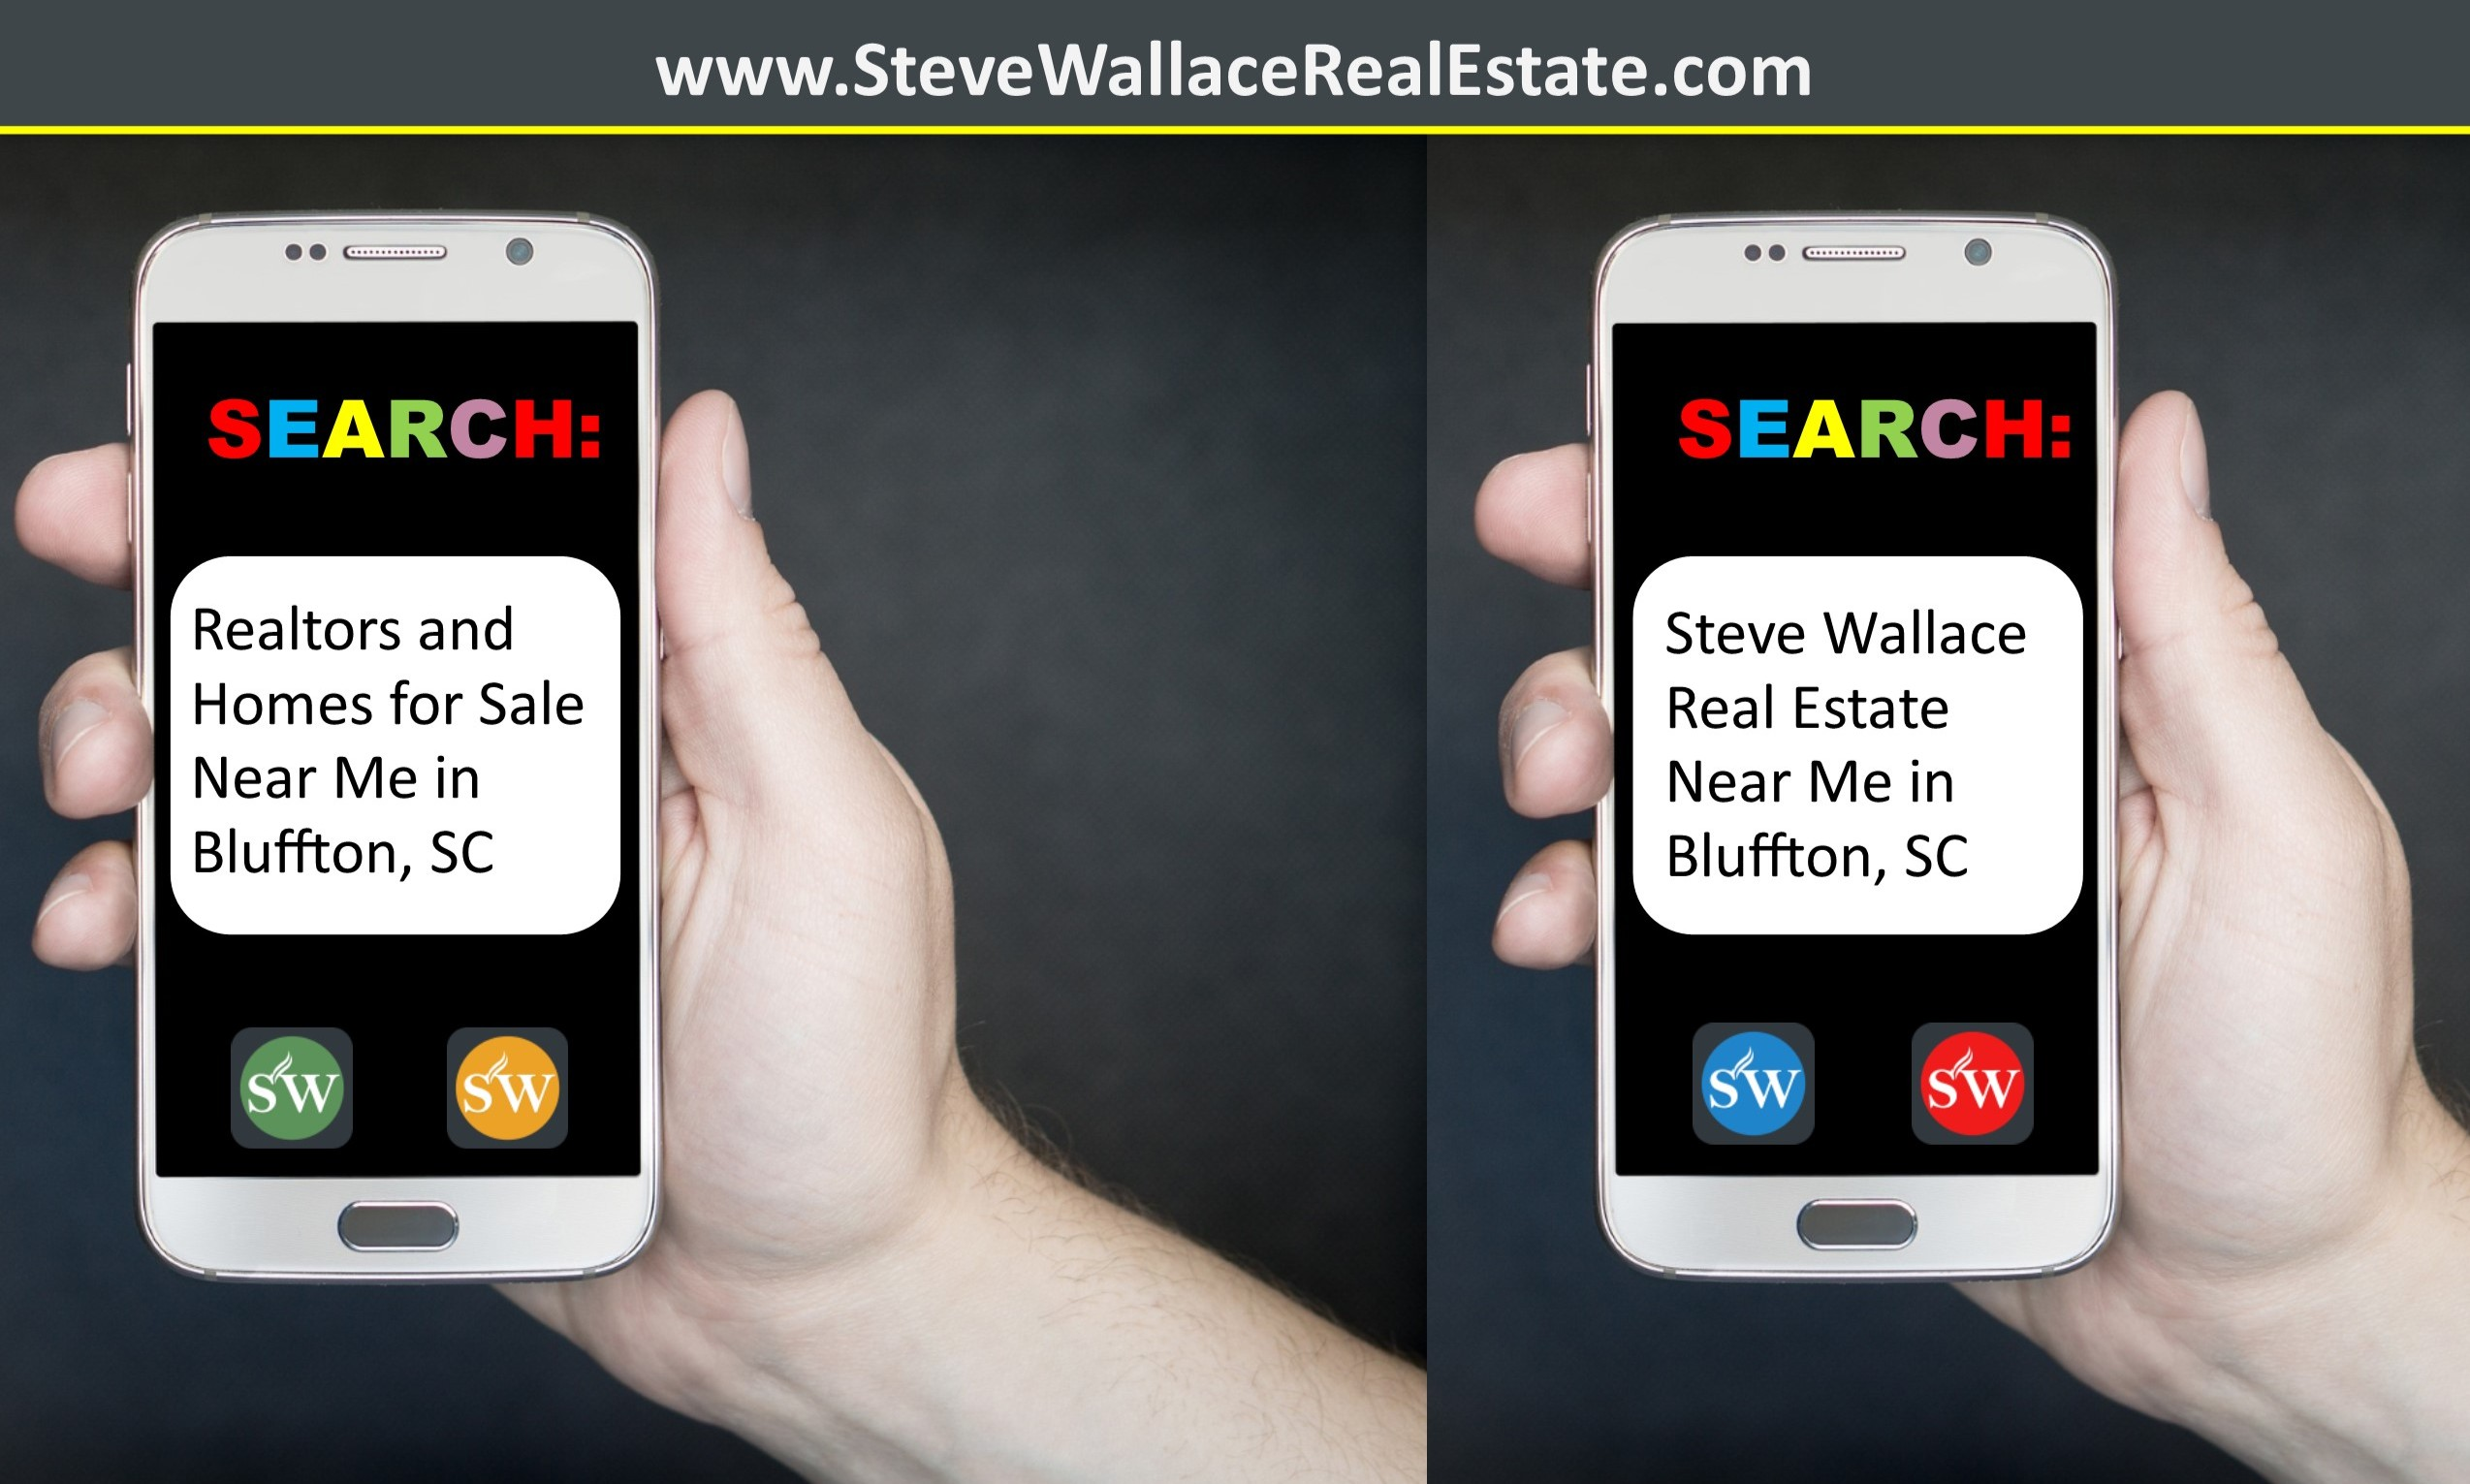 Realtors, Real Estate, Brokerage, Agents, Homes for Sale, Near Me, Bluffton, SC, Realty